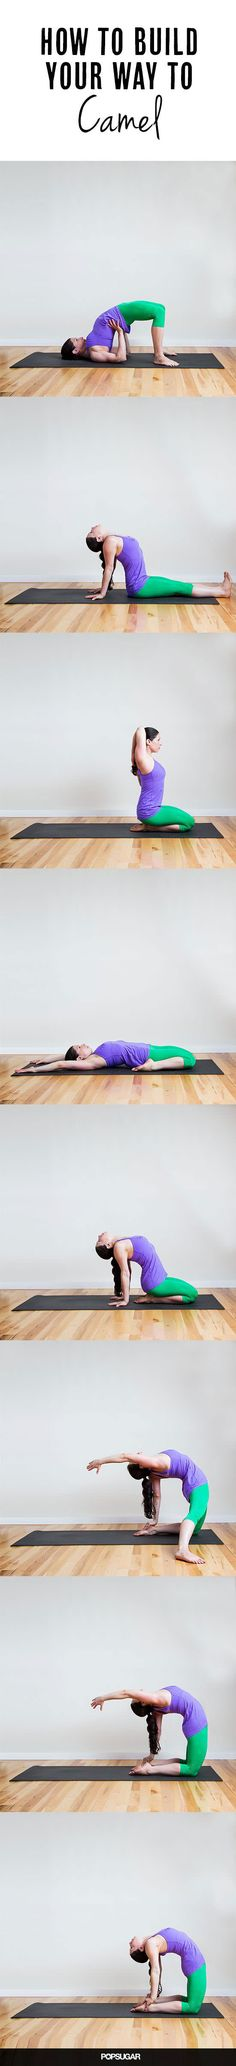 The camel pose benefits the spine and the front of the body by providing an intense stretch. Camel pose helps to relieve backache, helps strengthen the lower… Kundalini Yoga, Yoga Meditation, Yoga Fitness, Sport Fitness, Yoga Sequences, Yoga Poses, Yoga Pilates, Mudras, Sup Yoga